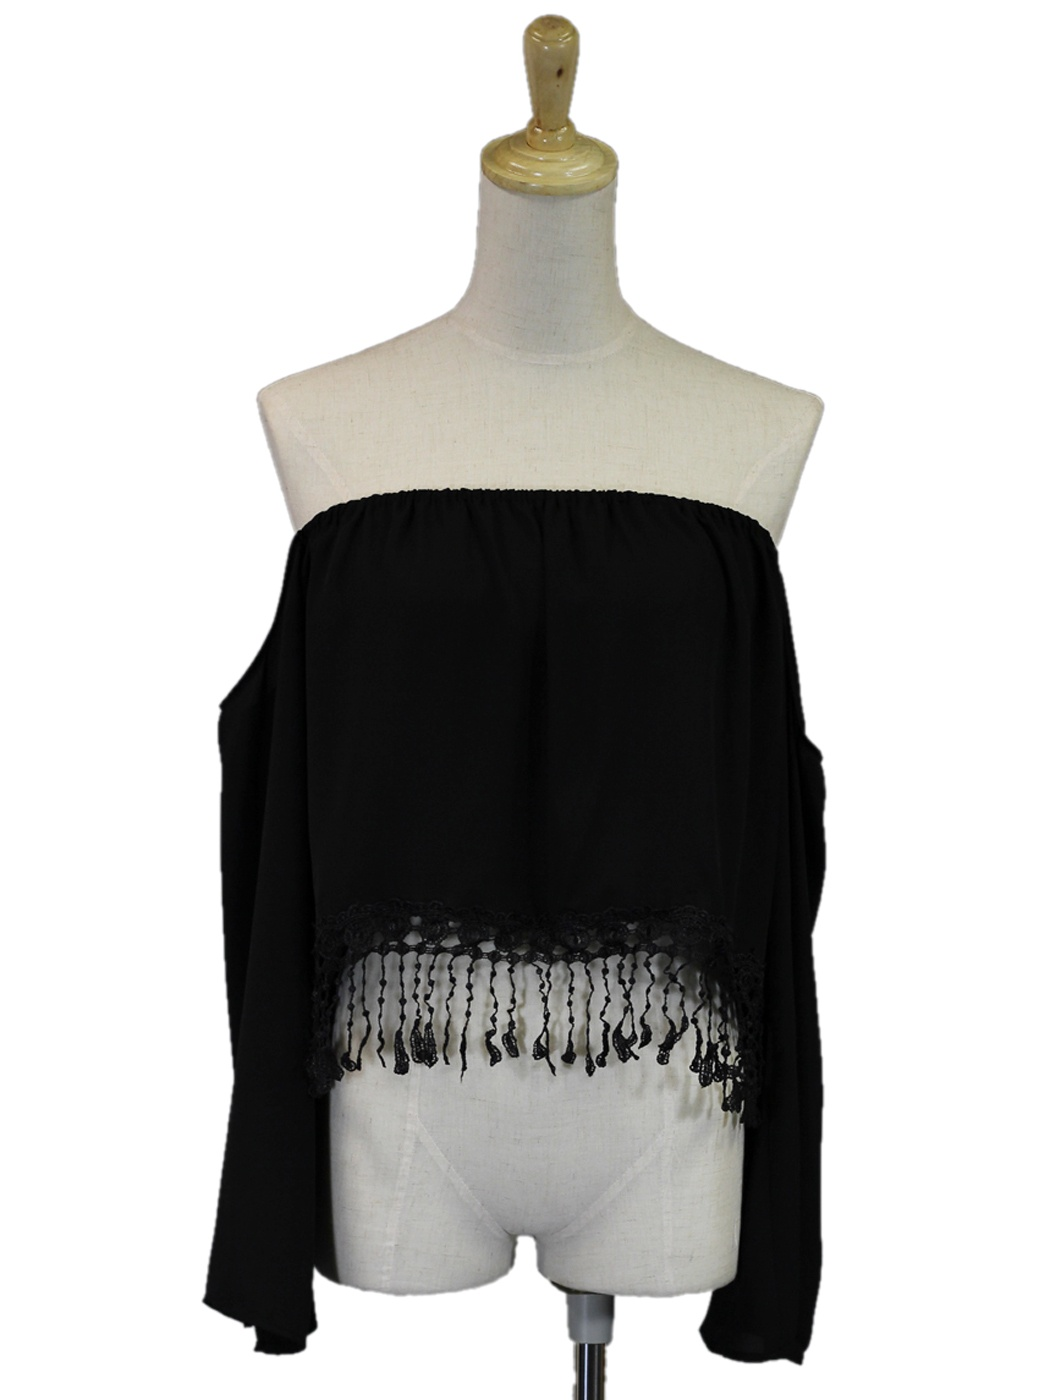 Cotton Candy USA Off Shoulder Crop Blouse With Bottom Fringe Crochet Detail [2Y0035-L] - $30.90 : Alilang, Fashion Costume Jewelry & Accessories Store